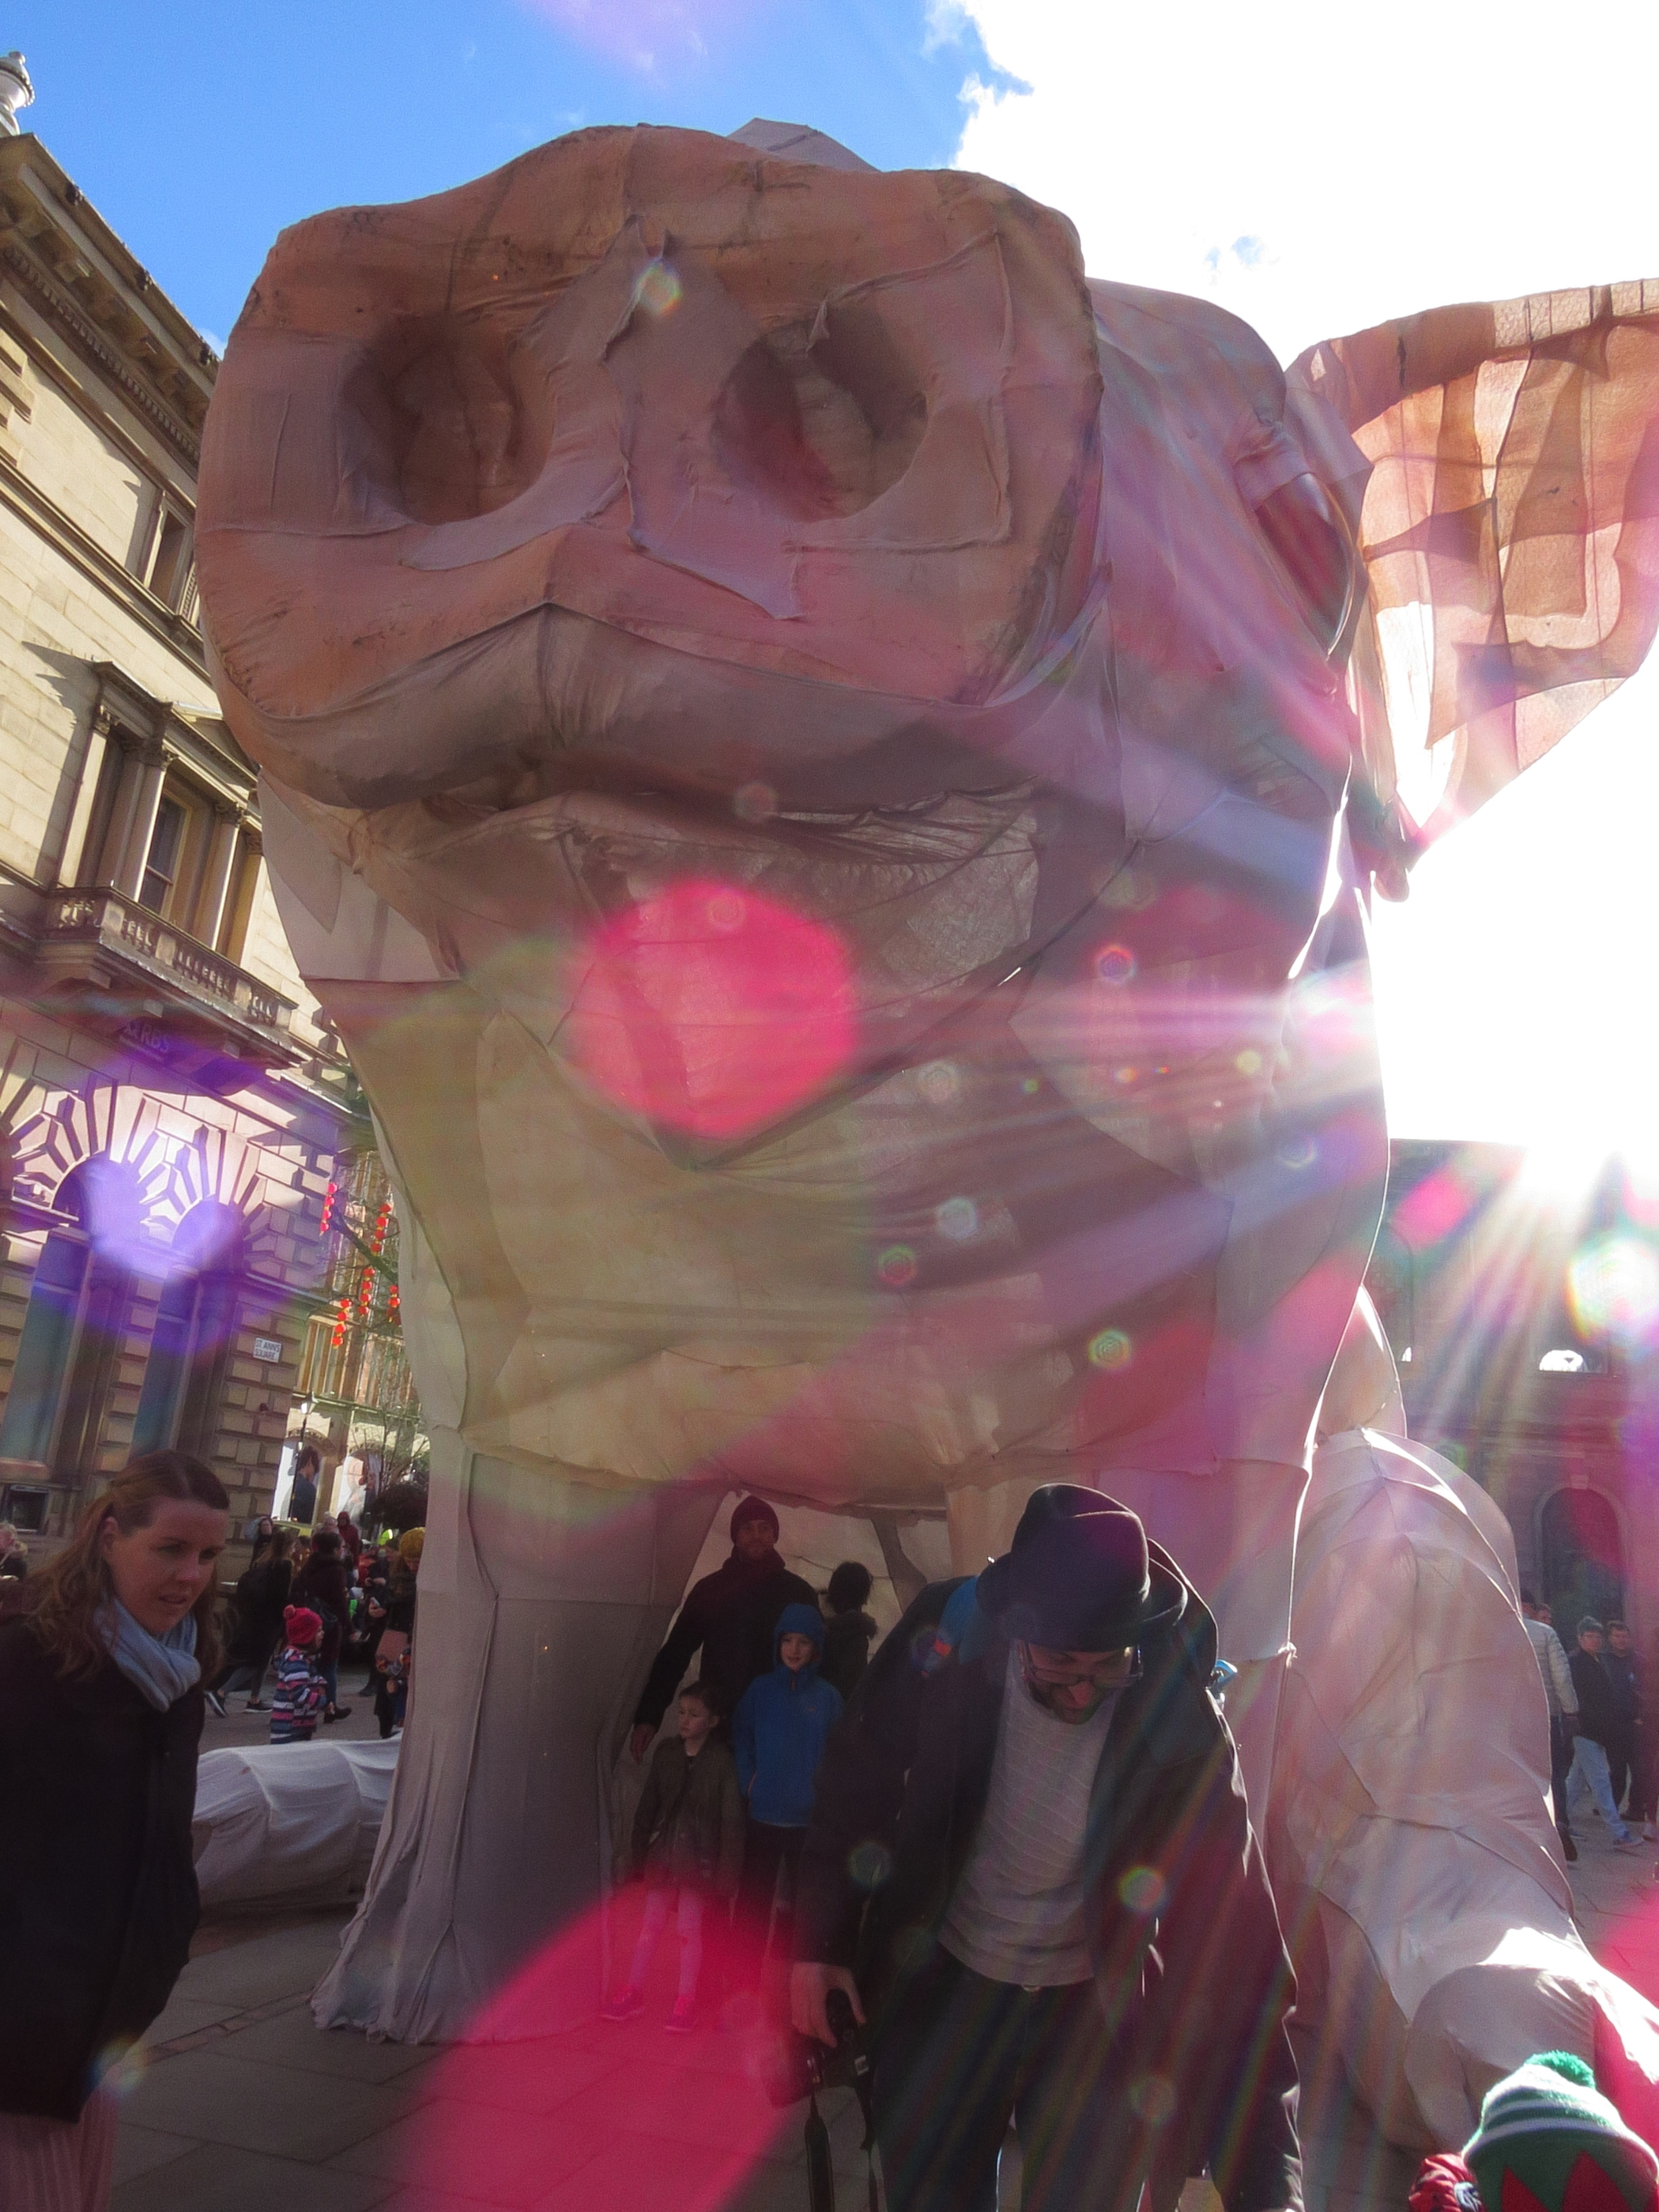 love lens flare turned pig ST A - afocks | ello